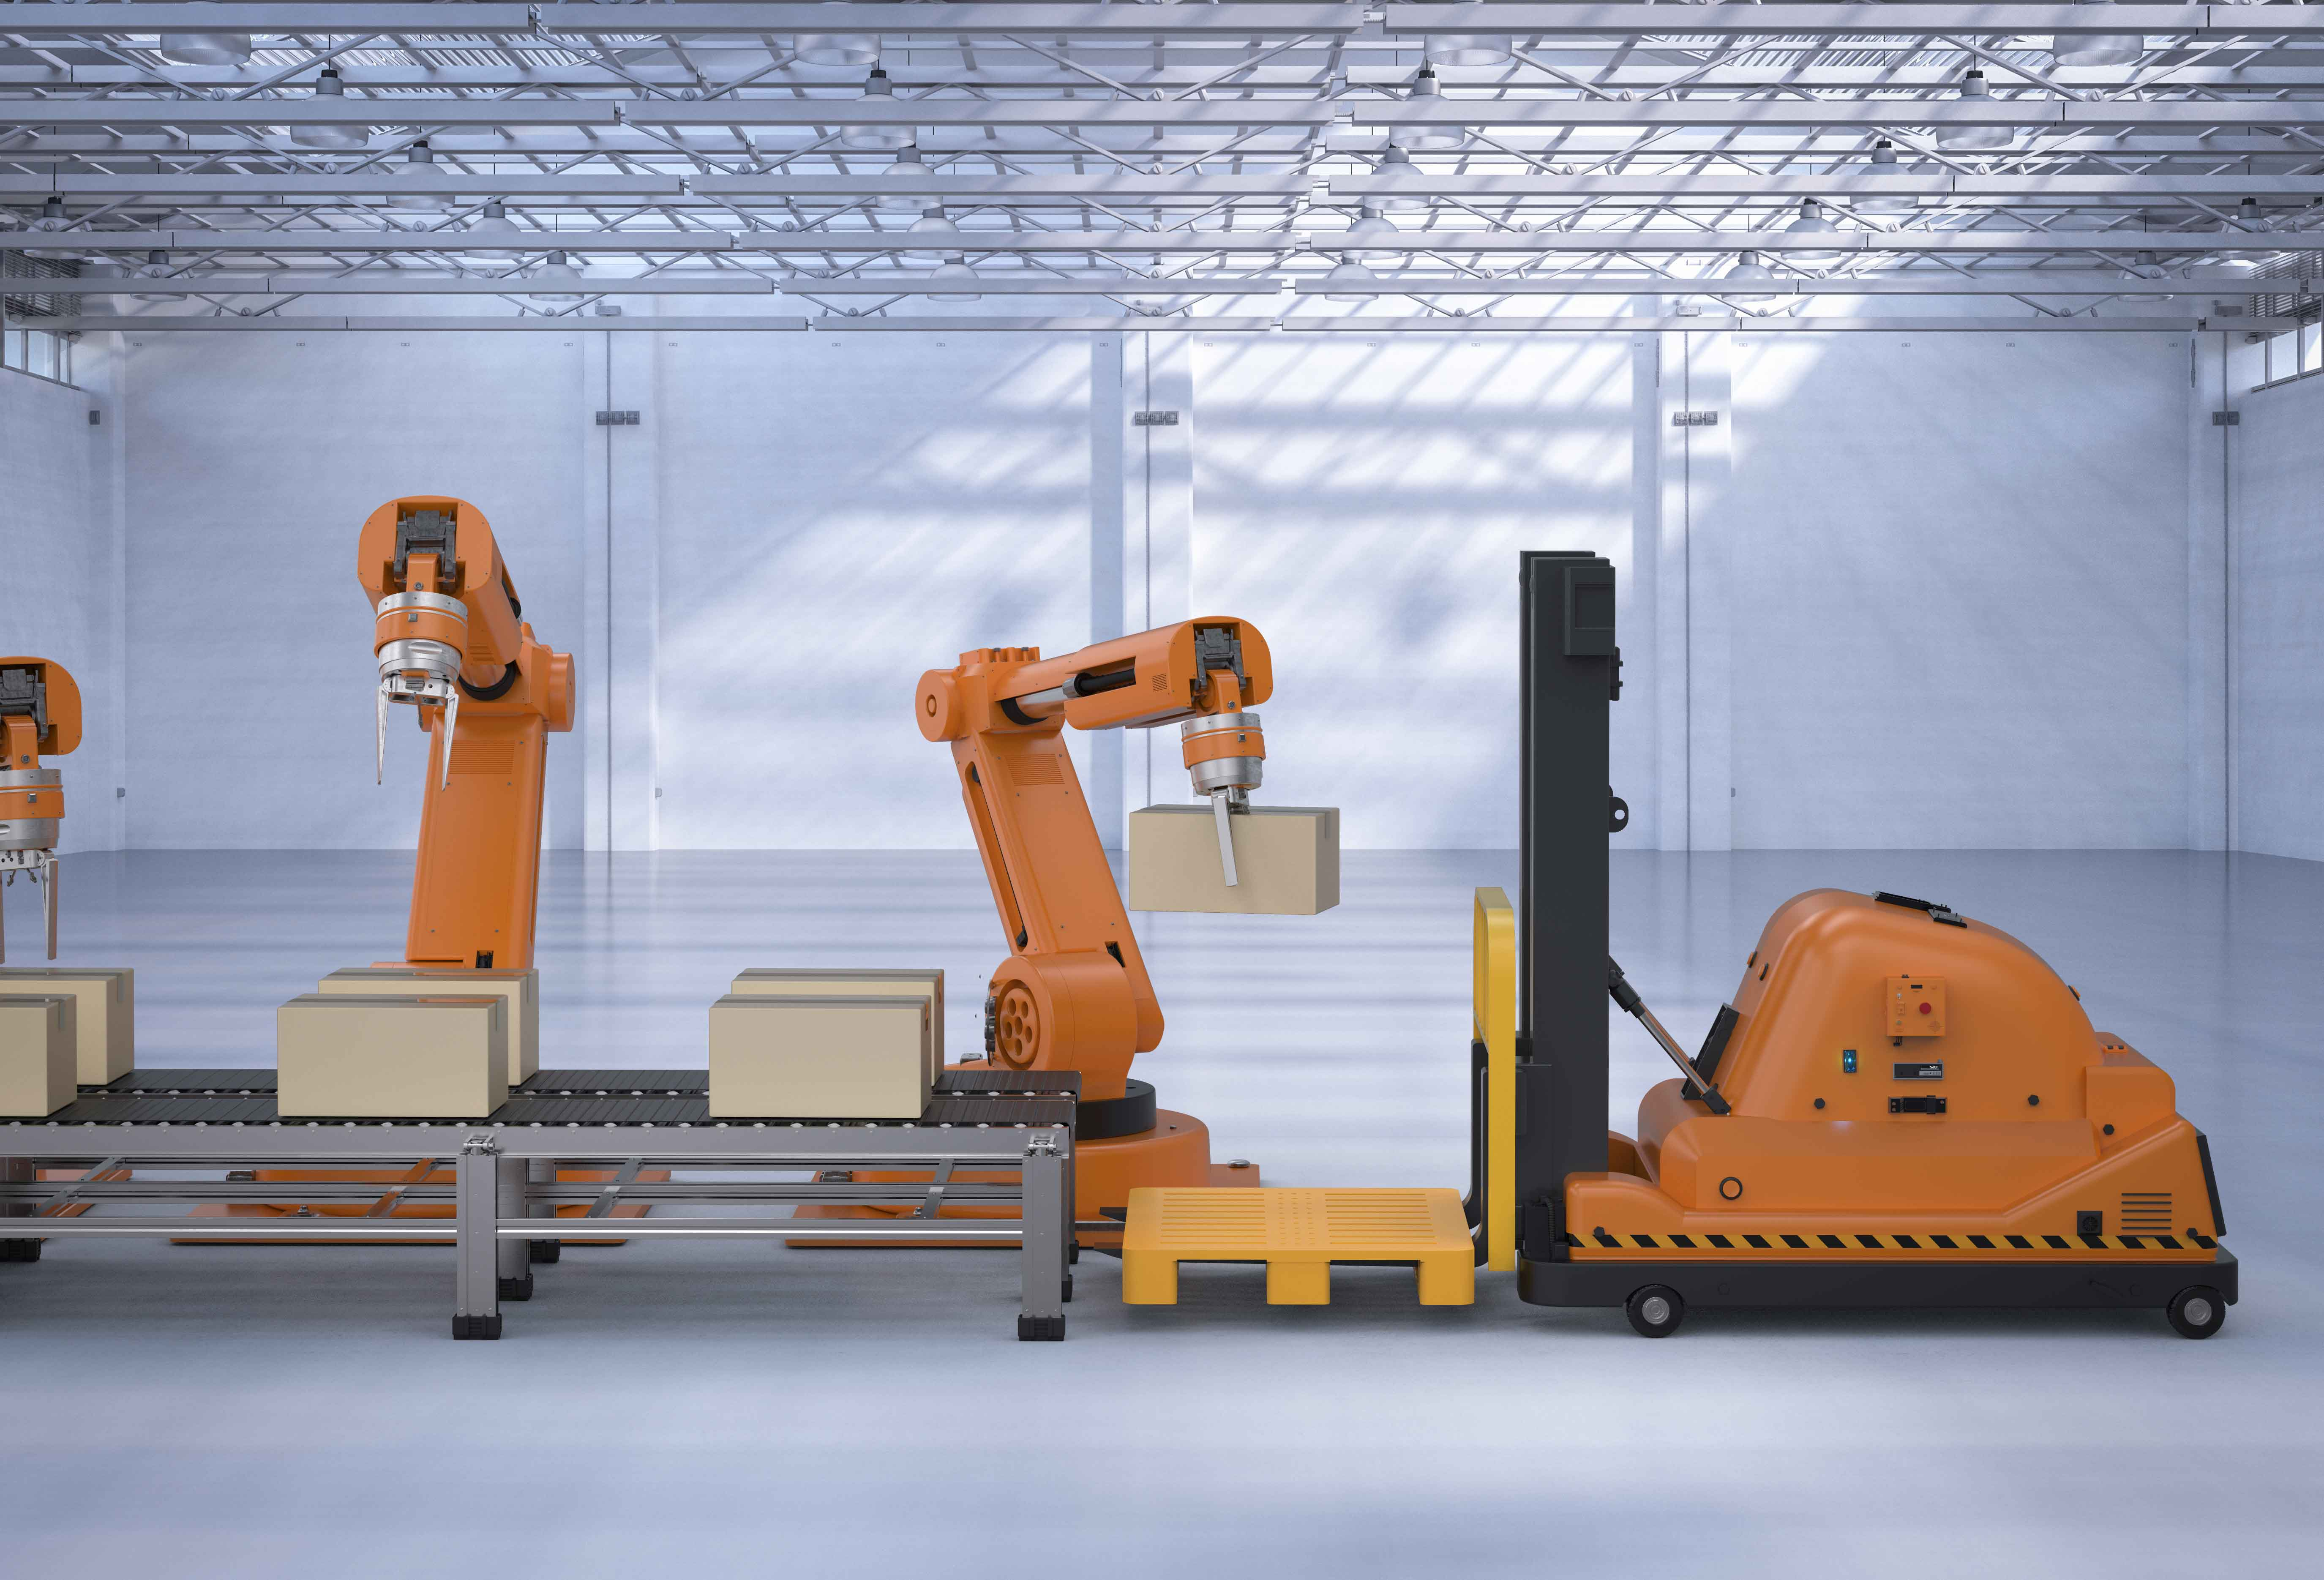 Warehouse Technology: Robotics and Automation